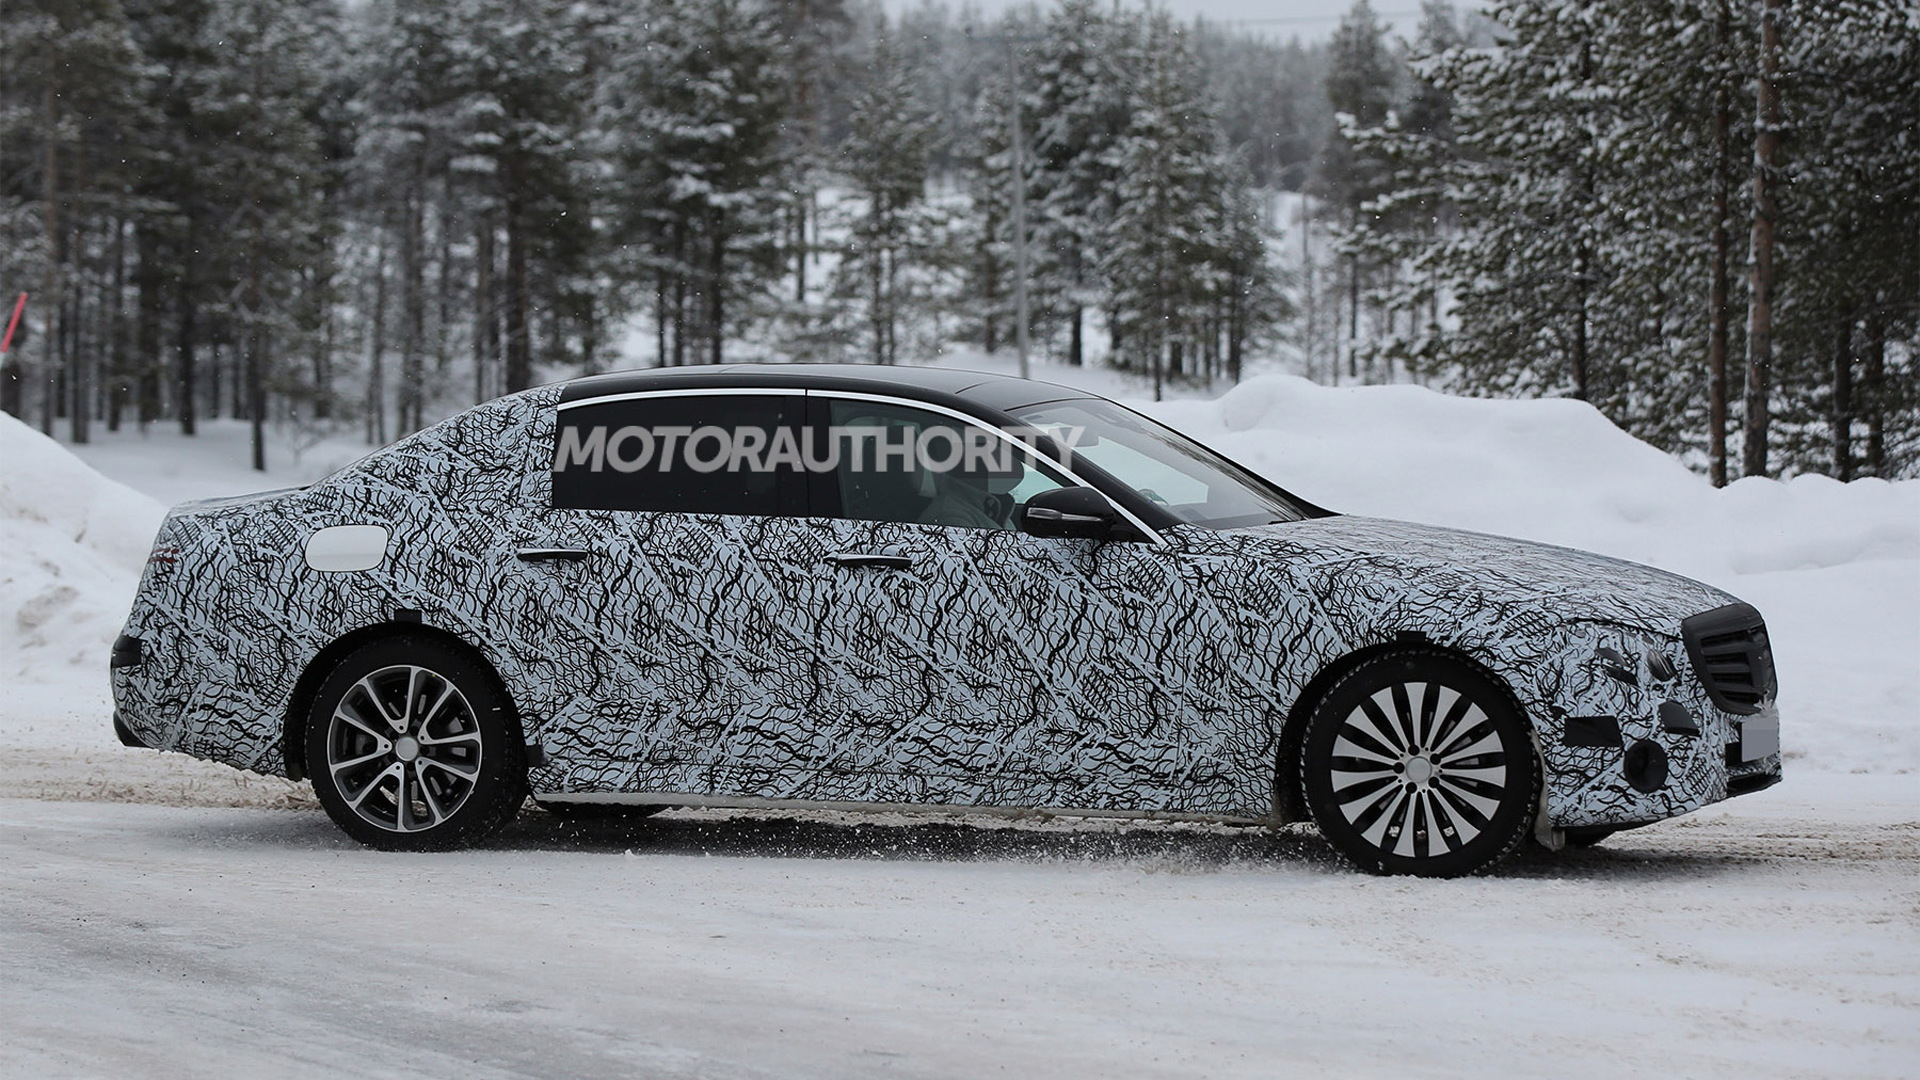 2017 Mercedes Maybach E-Class spy shots - Image via S. Baldauf/SB-Medien